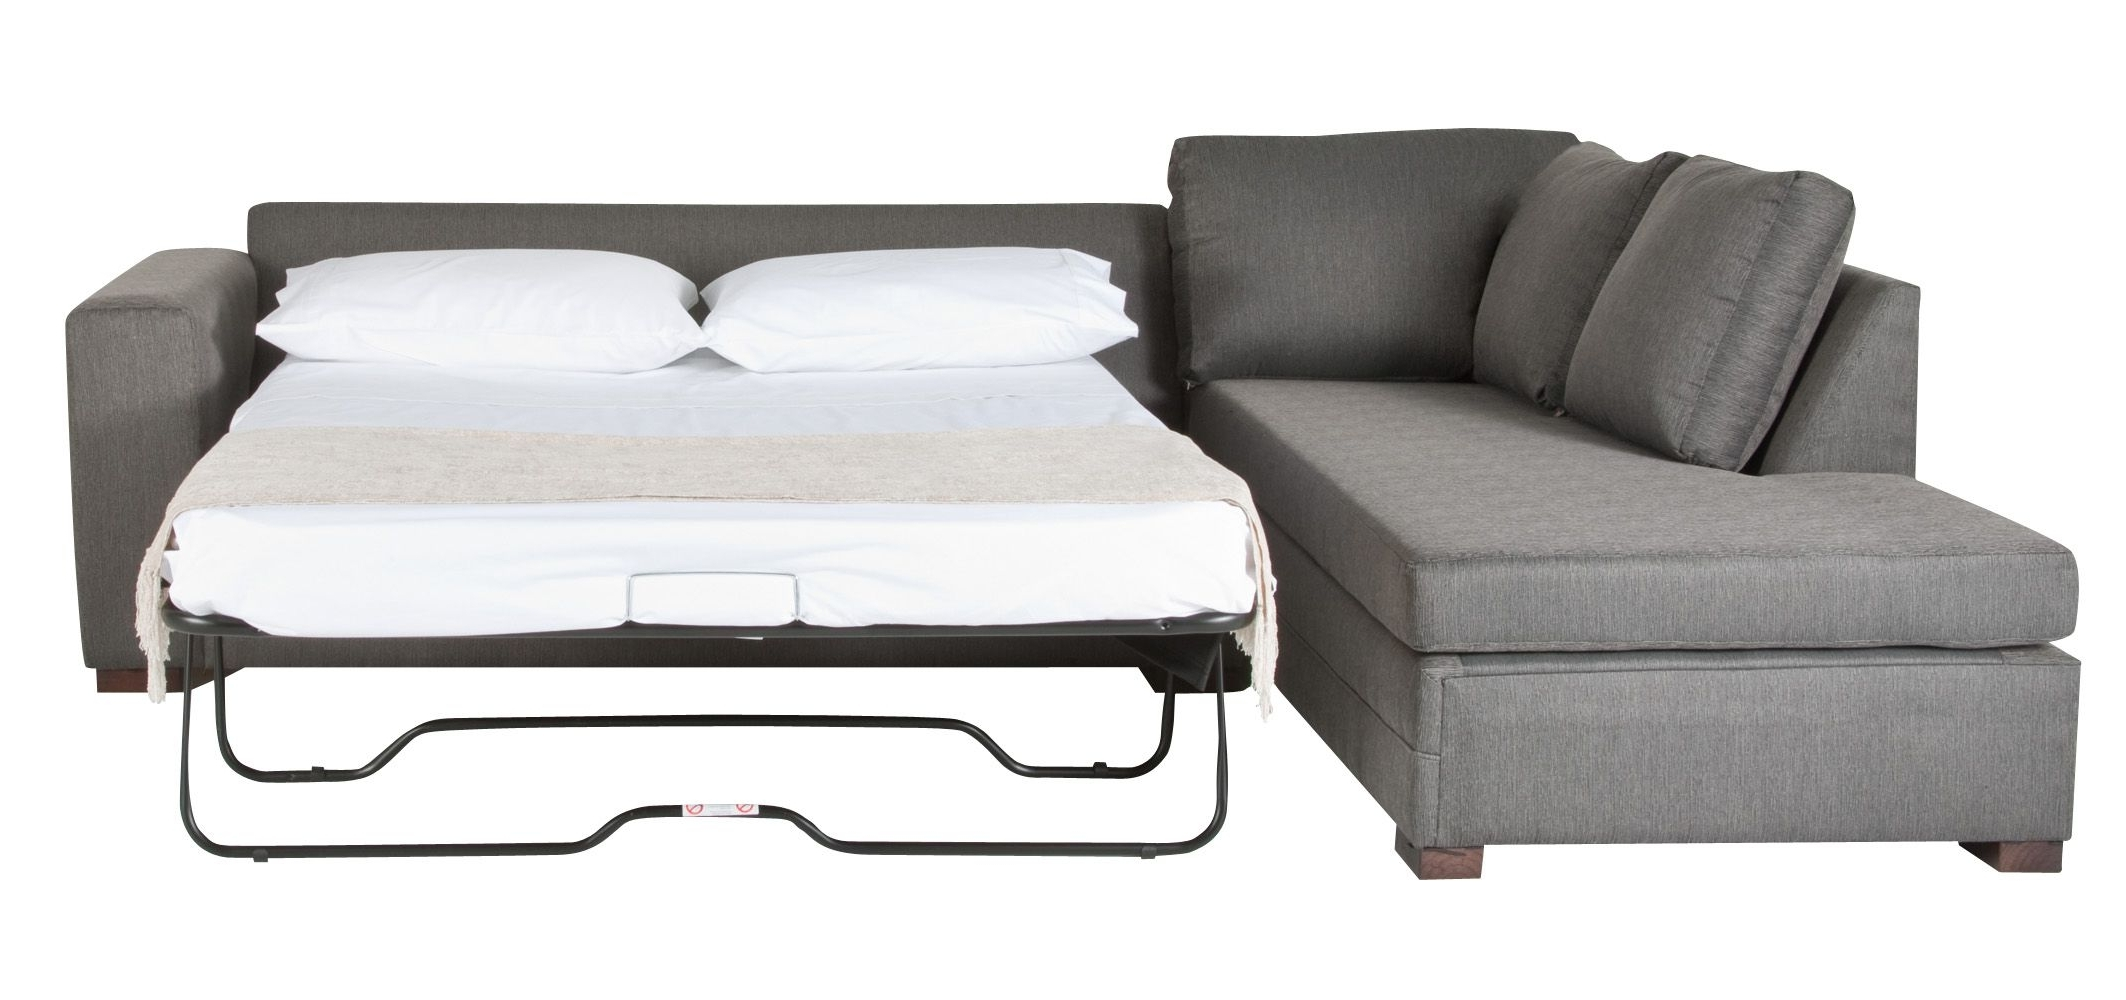 Preferred King Size Sleeper Sofas Within Picturesque Gray Fabric Sleeper Couch With Pull Out Bed White (View 13 of 15)